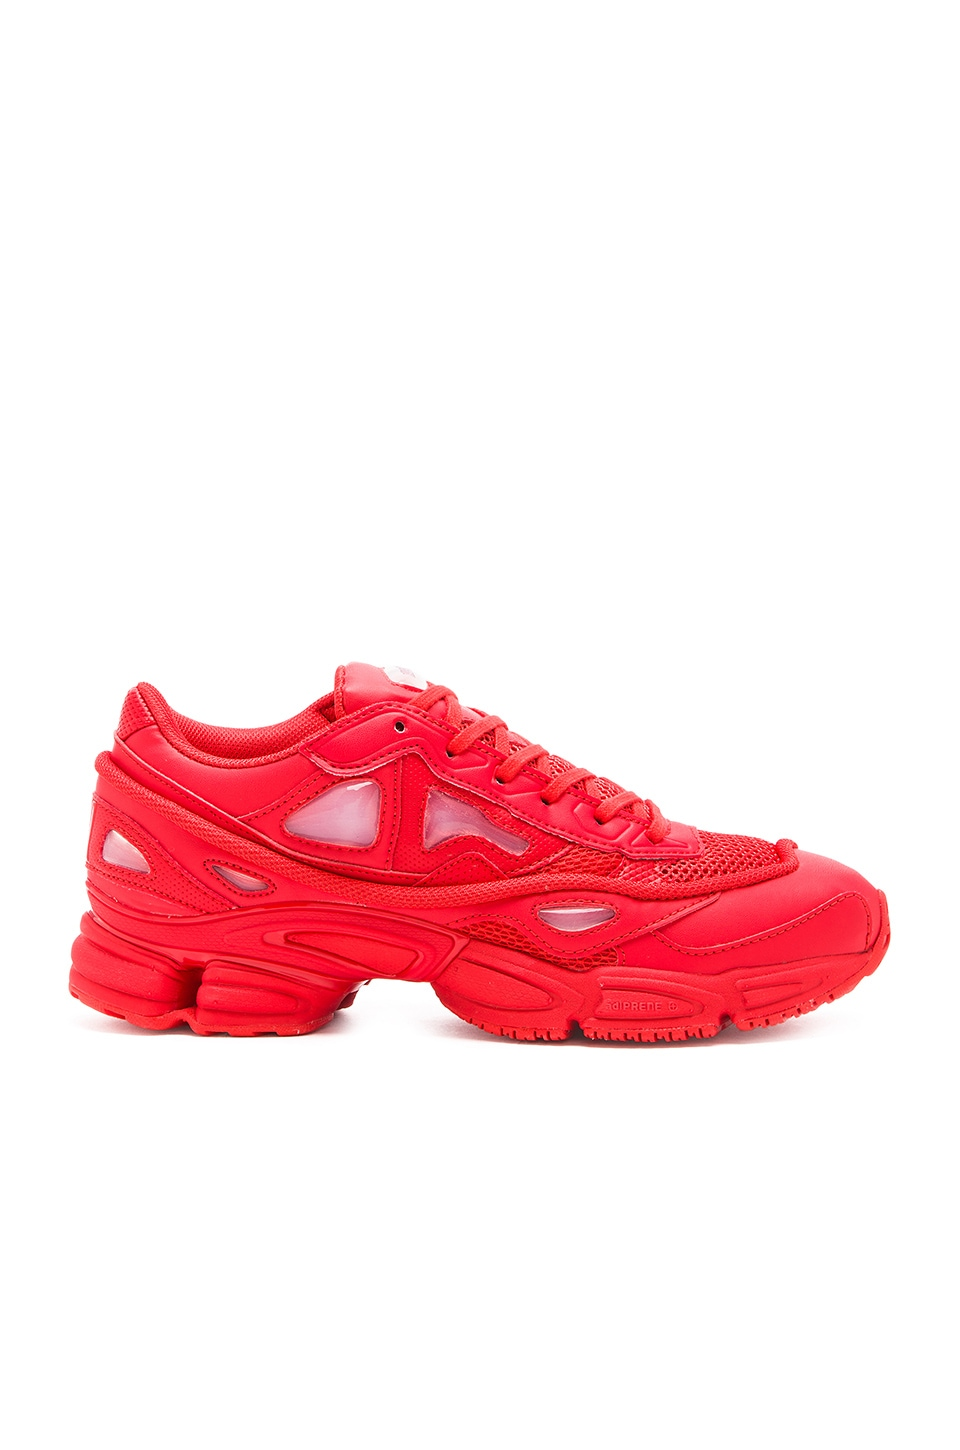 on sale 0afe0 2204d adidas by Raf Simons Ozweego 2 in Red Red Red | REVOLVE